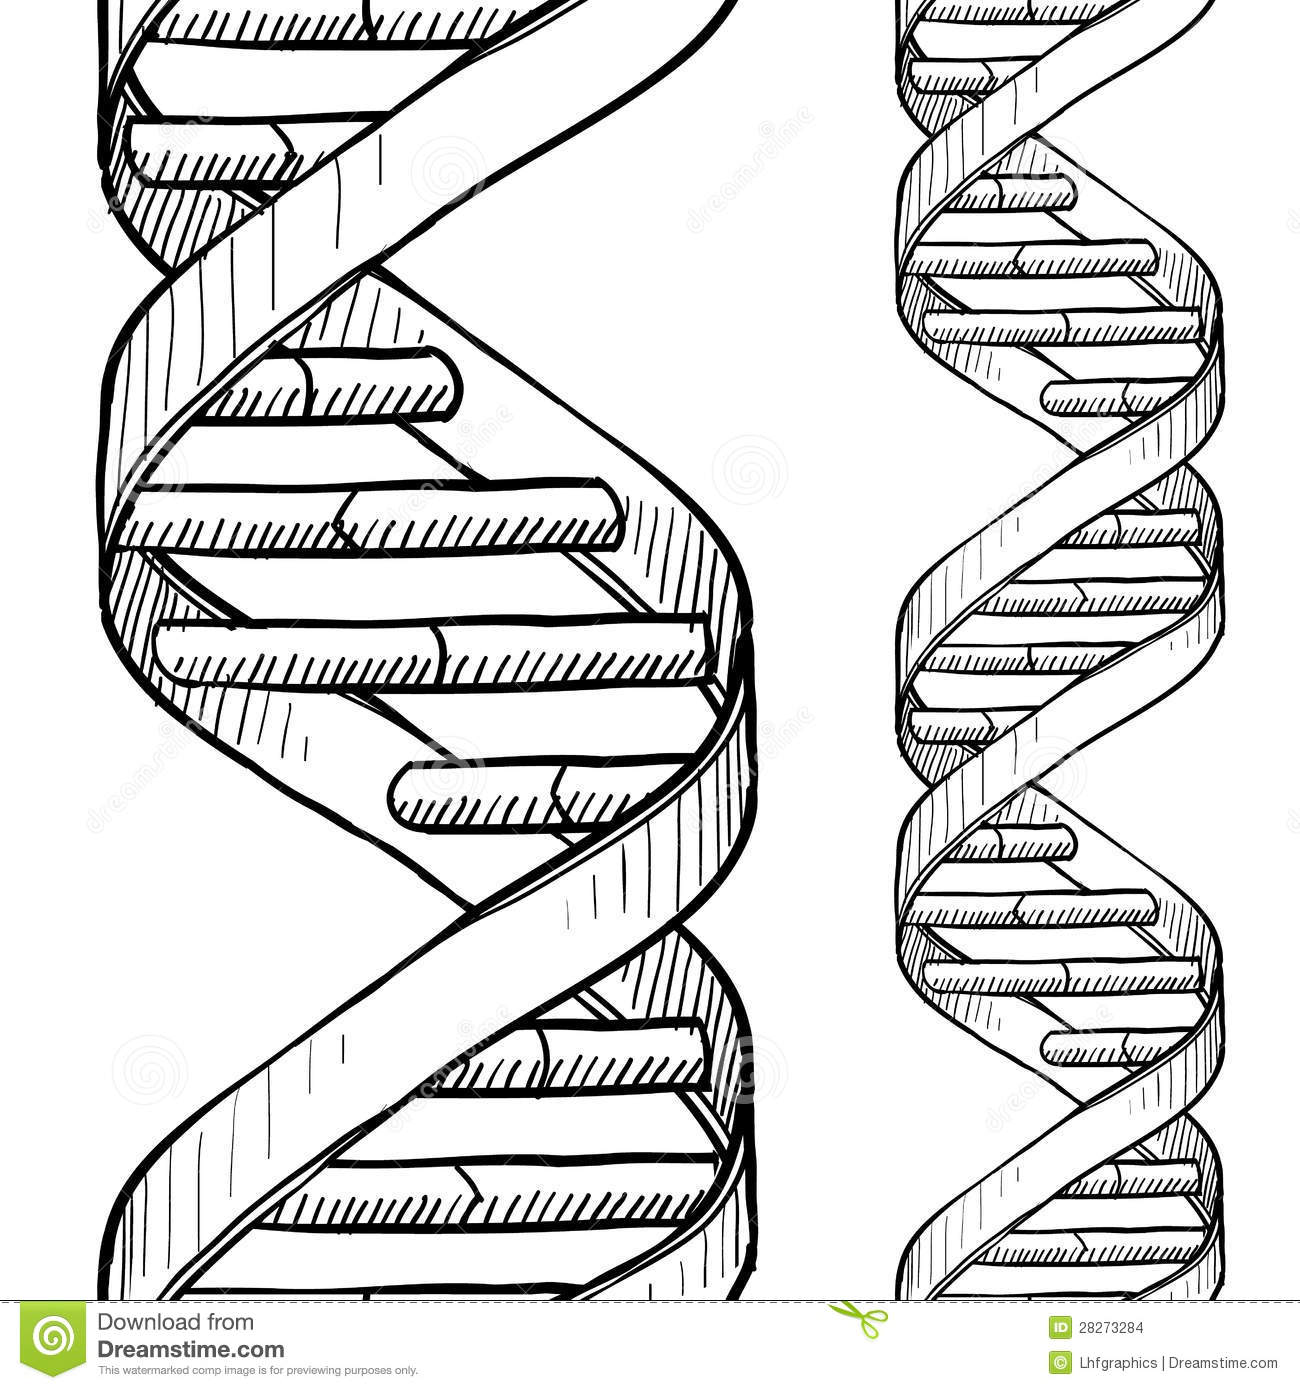 Dna Strand Drawing At Getdrawings